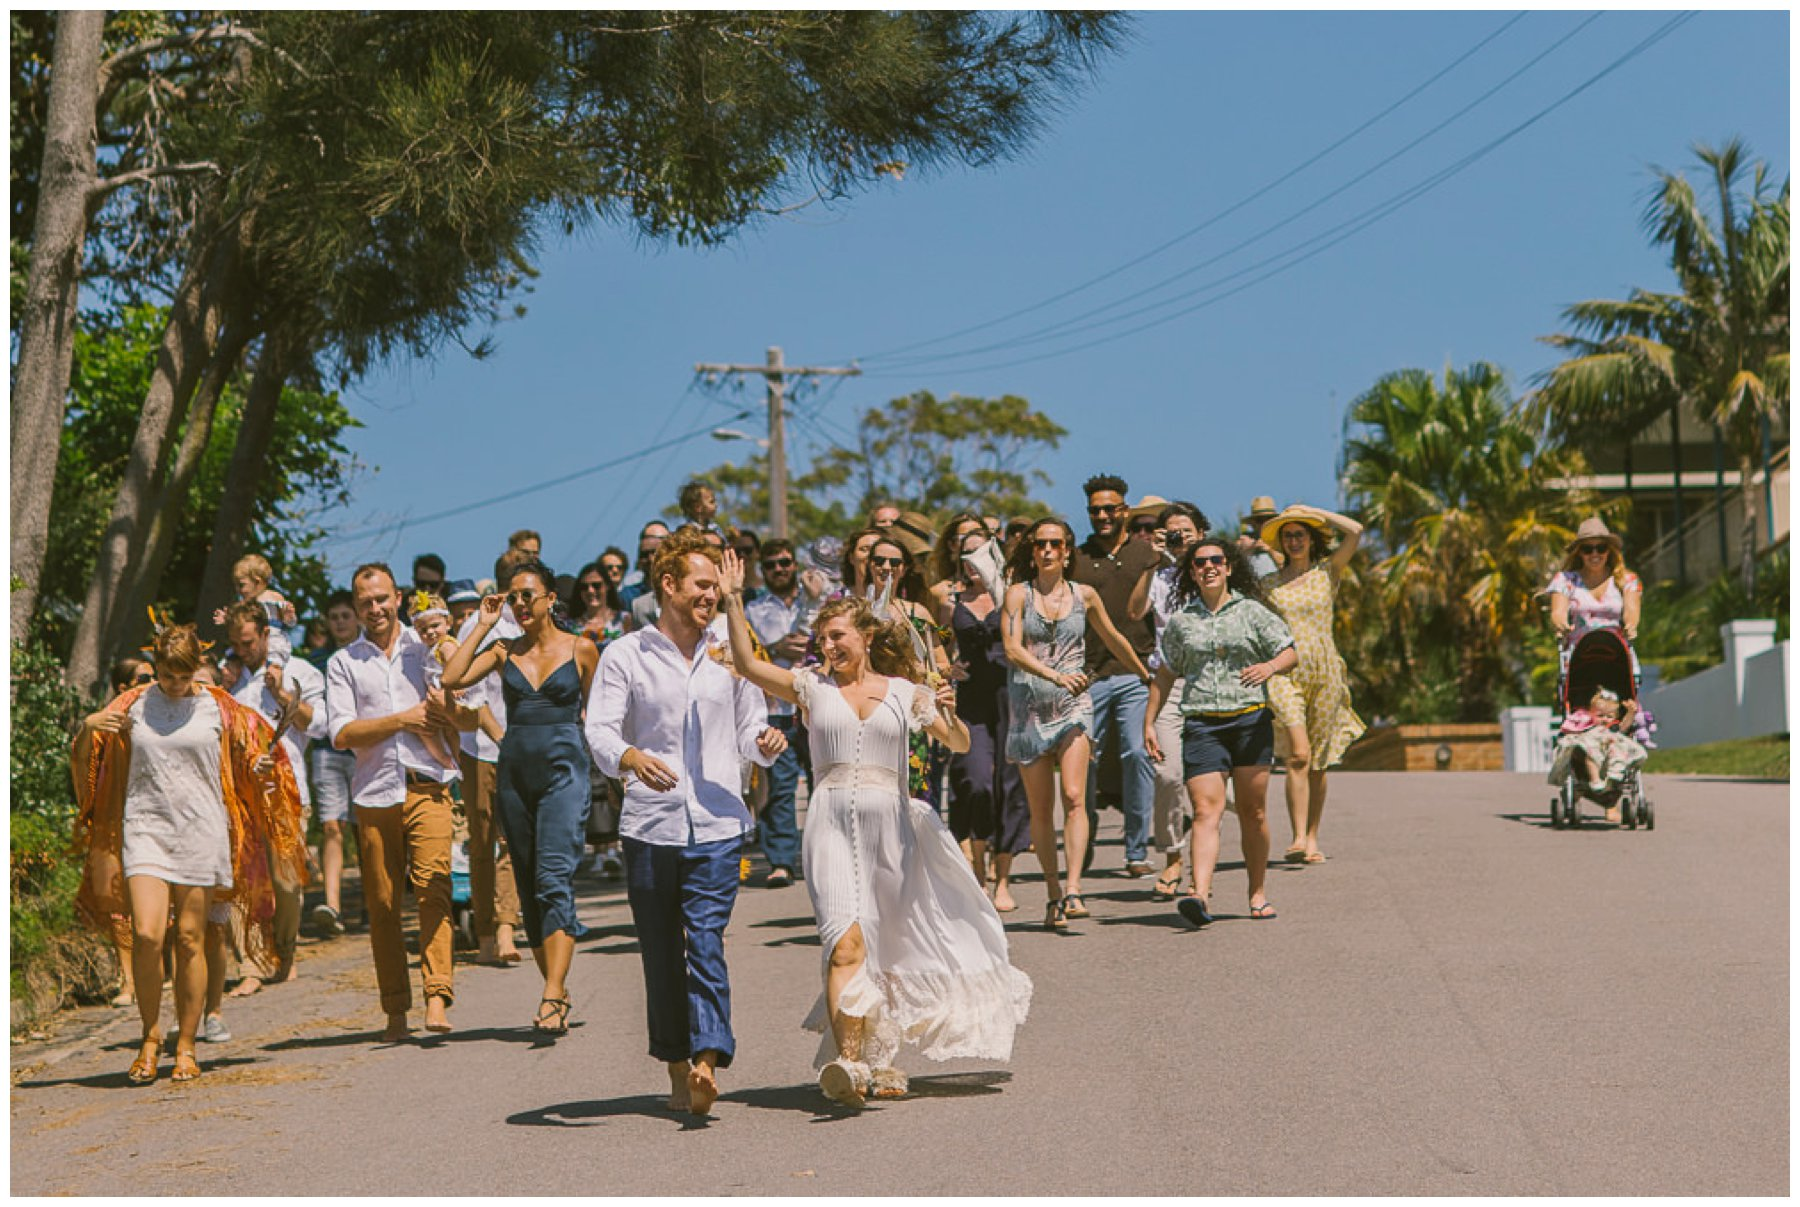 diy wedding photographer, relaxed wedding photographer, southern highlands wedding photographer, southern highlands photographer, glenworth valley wedding photographer, bush wedding photographer, festival wedding, march the streets